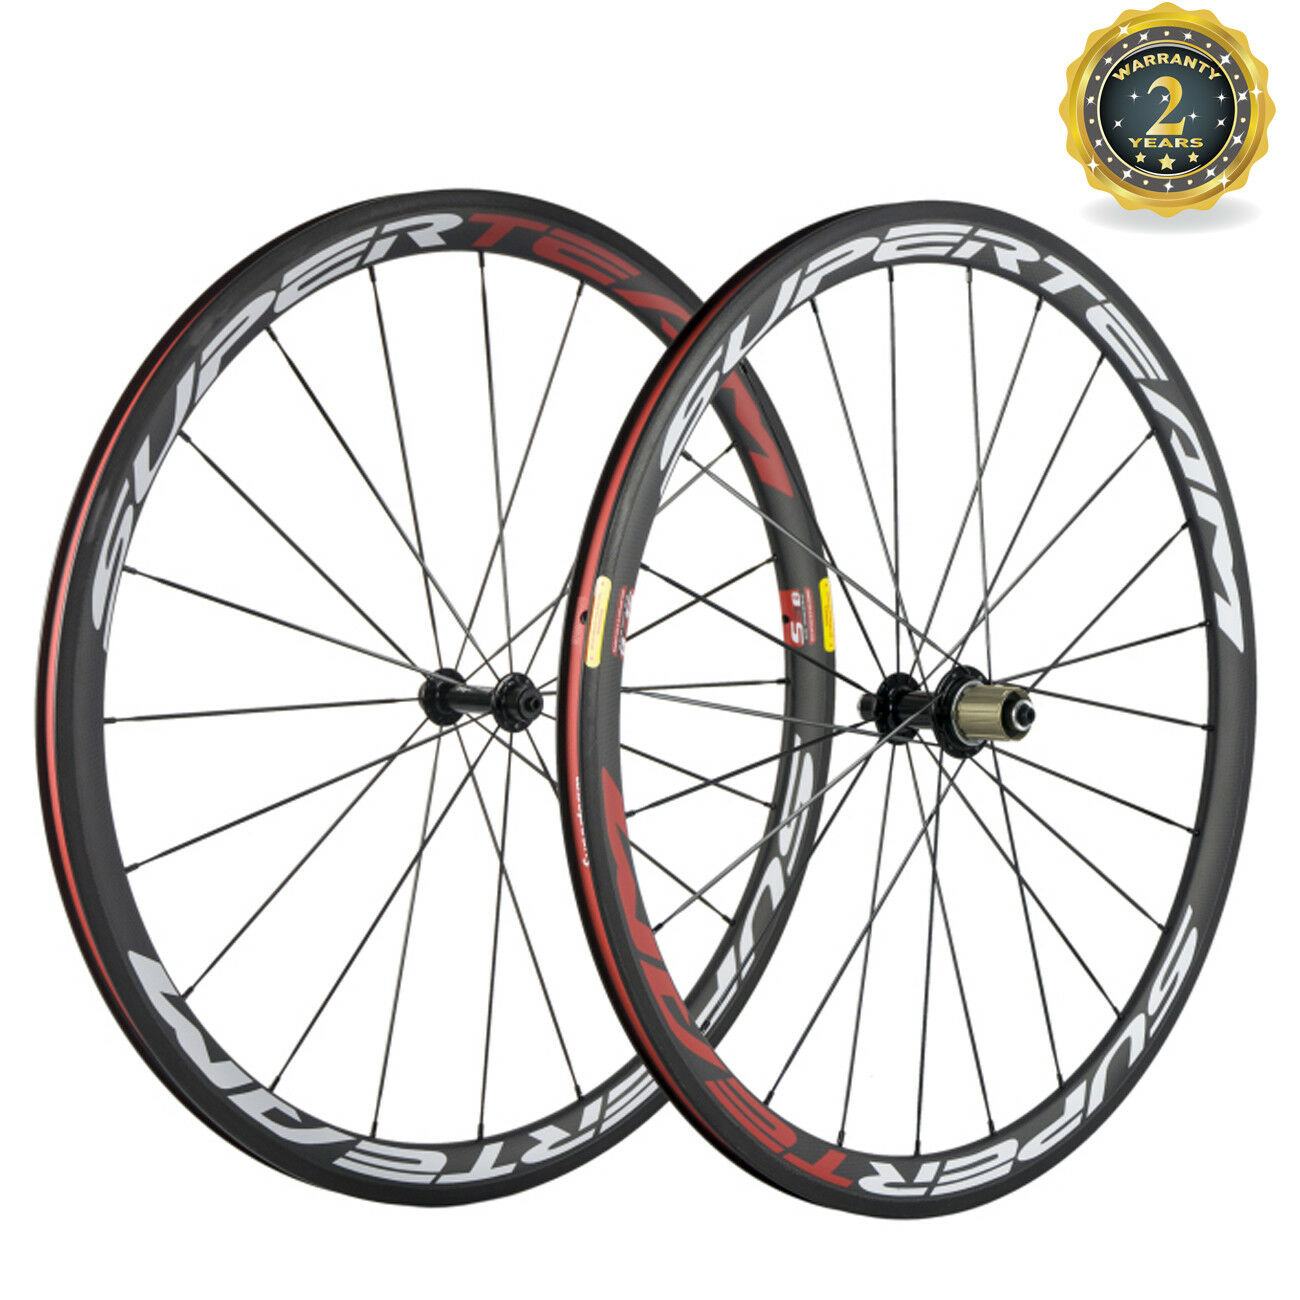 Superteam Bicycle Carbon Wheels 38mm Clincher Road Bike  Wheels R13 Hub 11 Speed  sale online discount low price